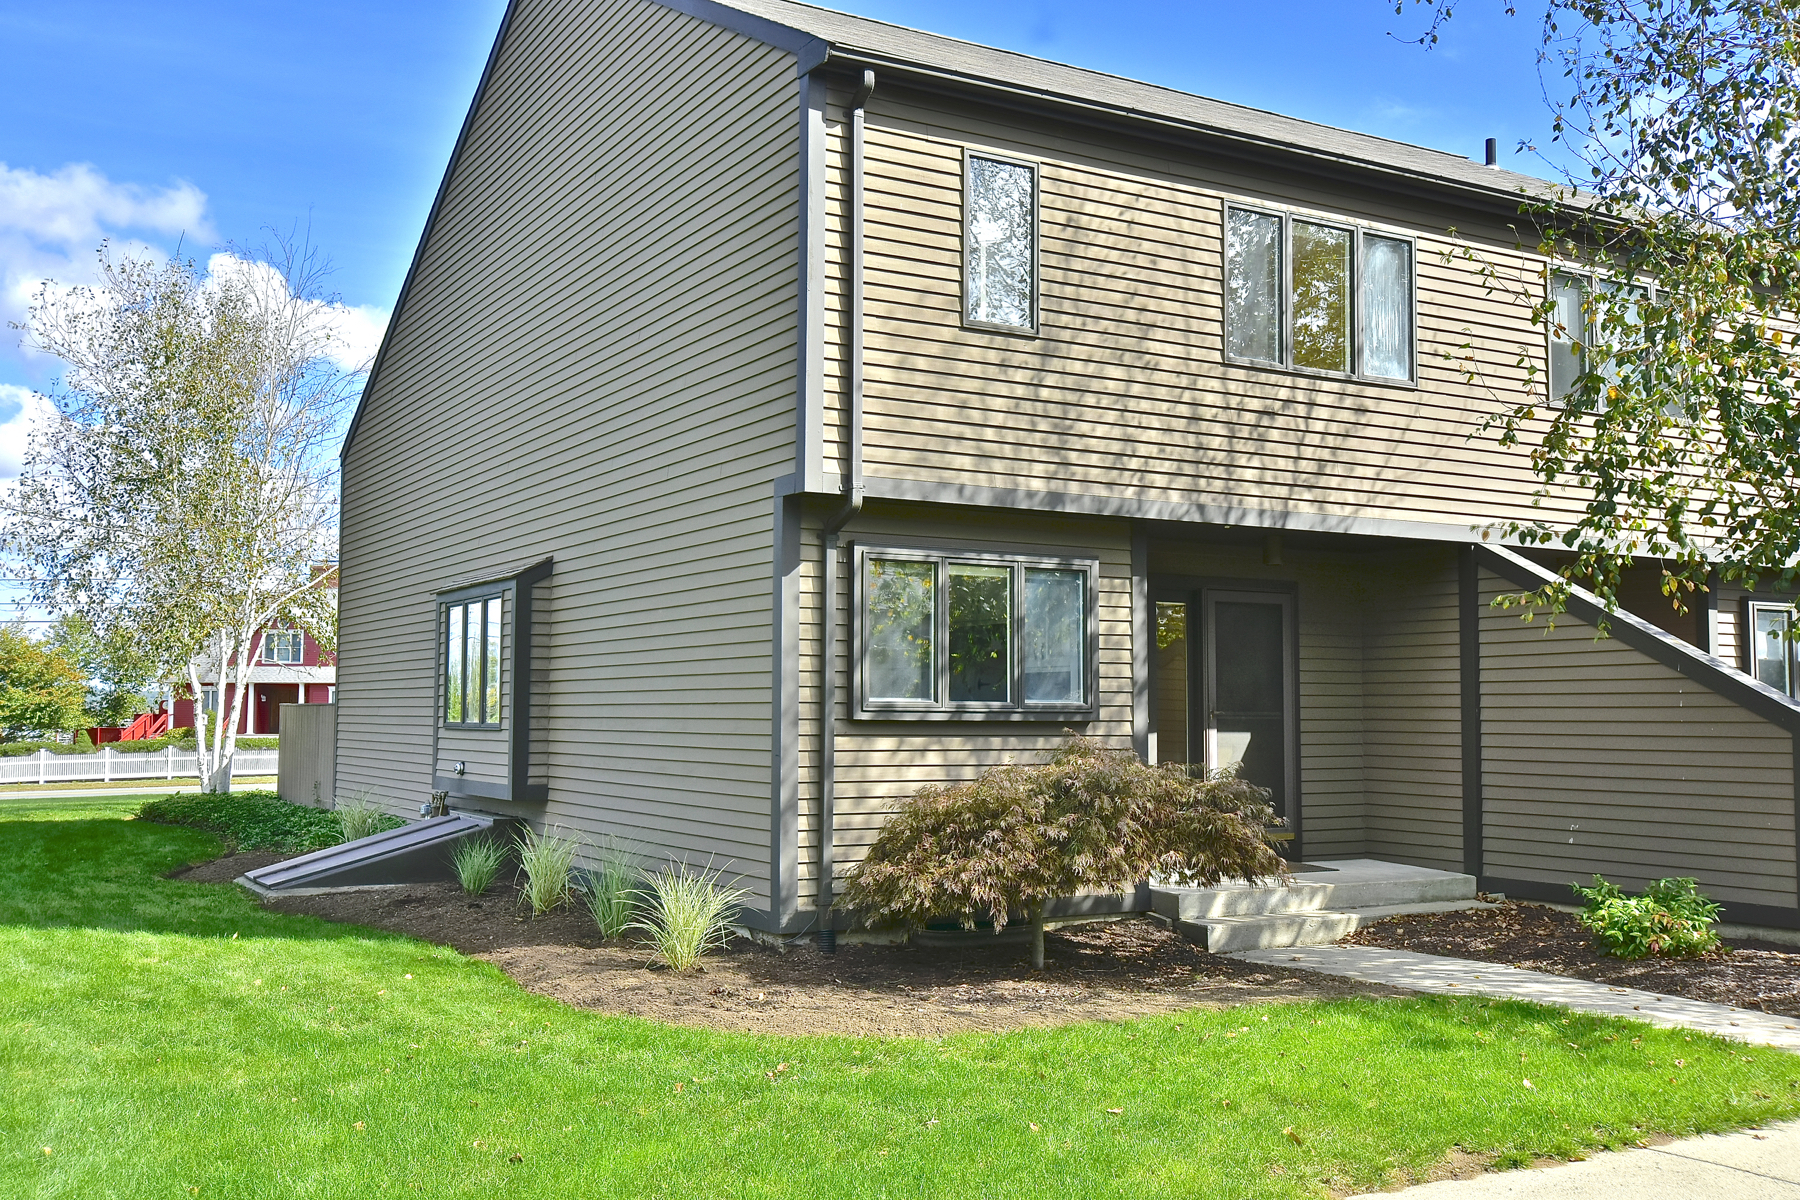 Condominium for Sale at Desirable Three Story Townhouse 100 Sheffield St D1 Old Saybrook, Connecticut, 06475 United States